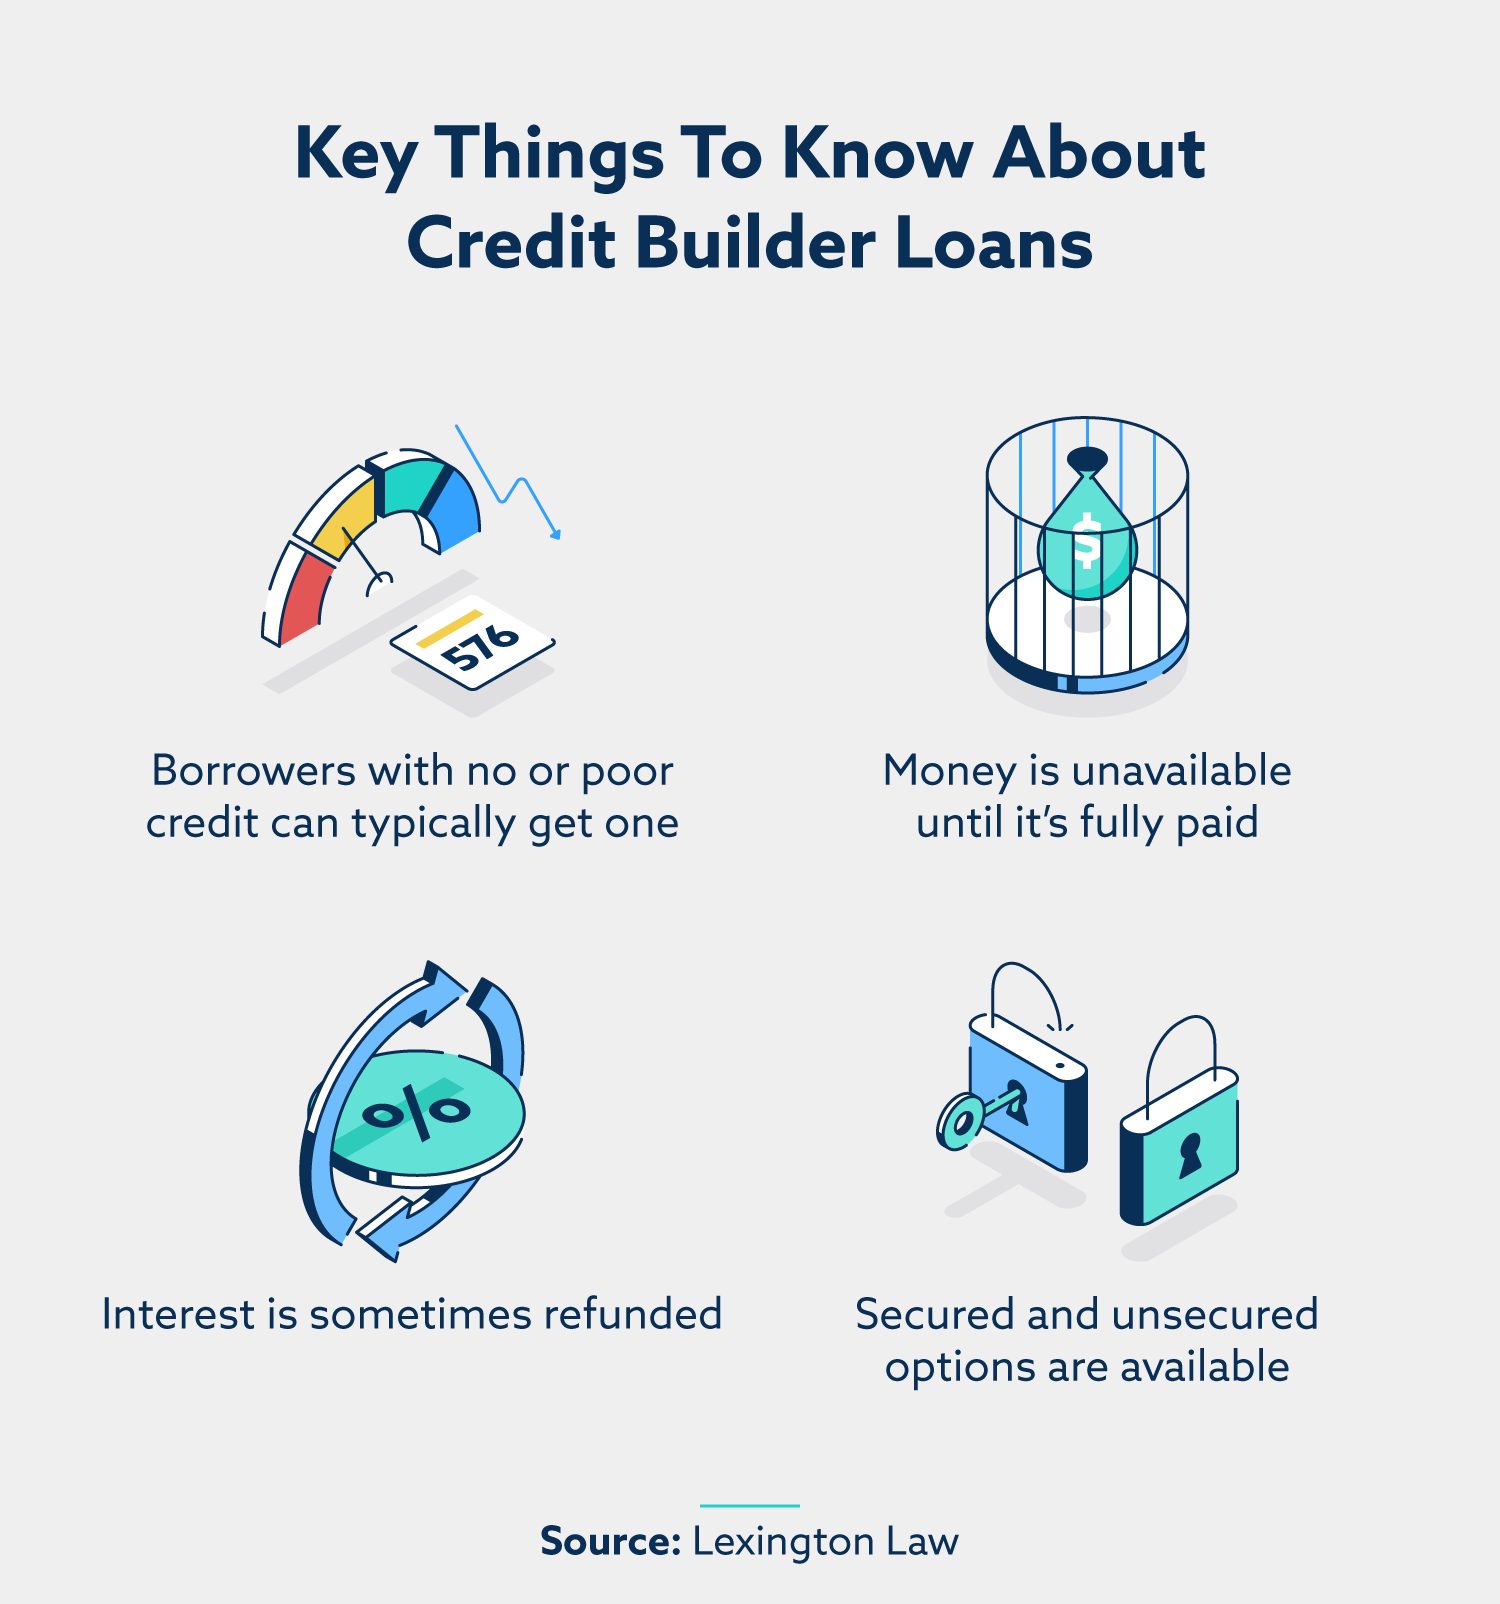 key things to know about credit builder loans